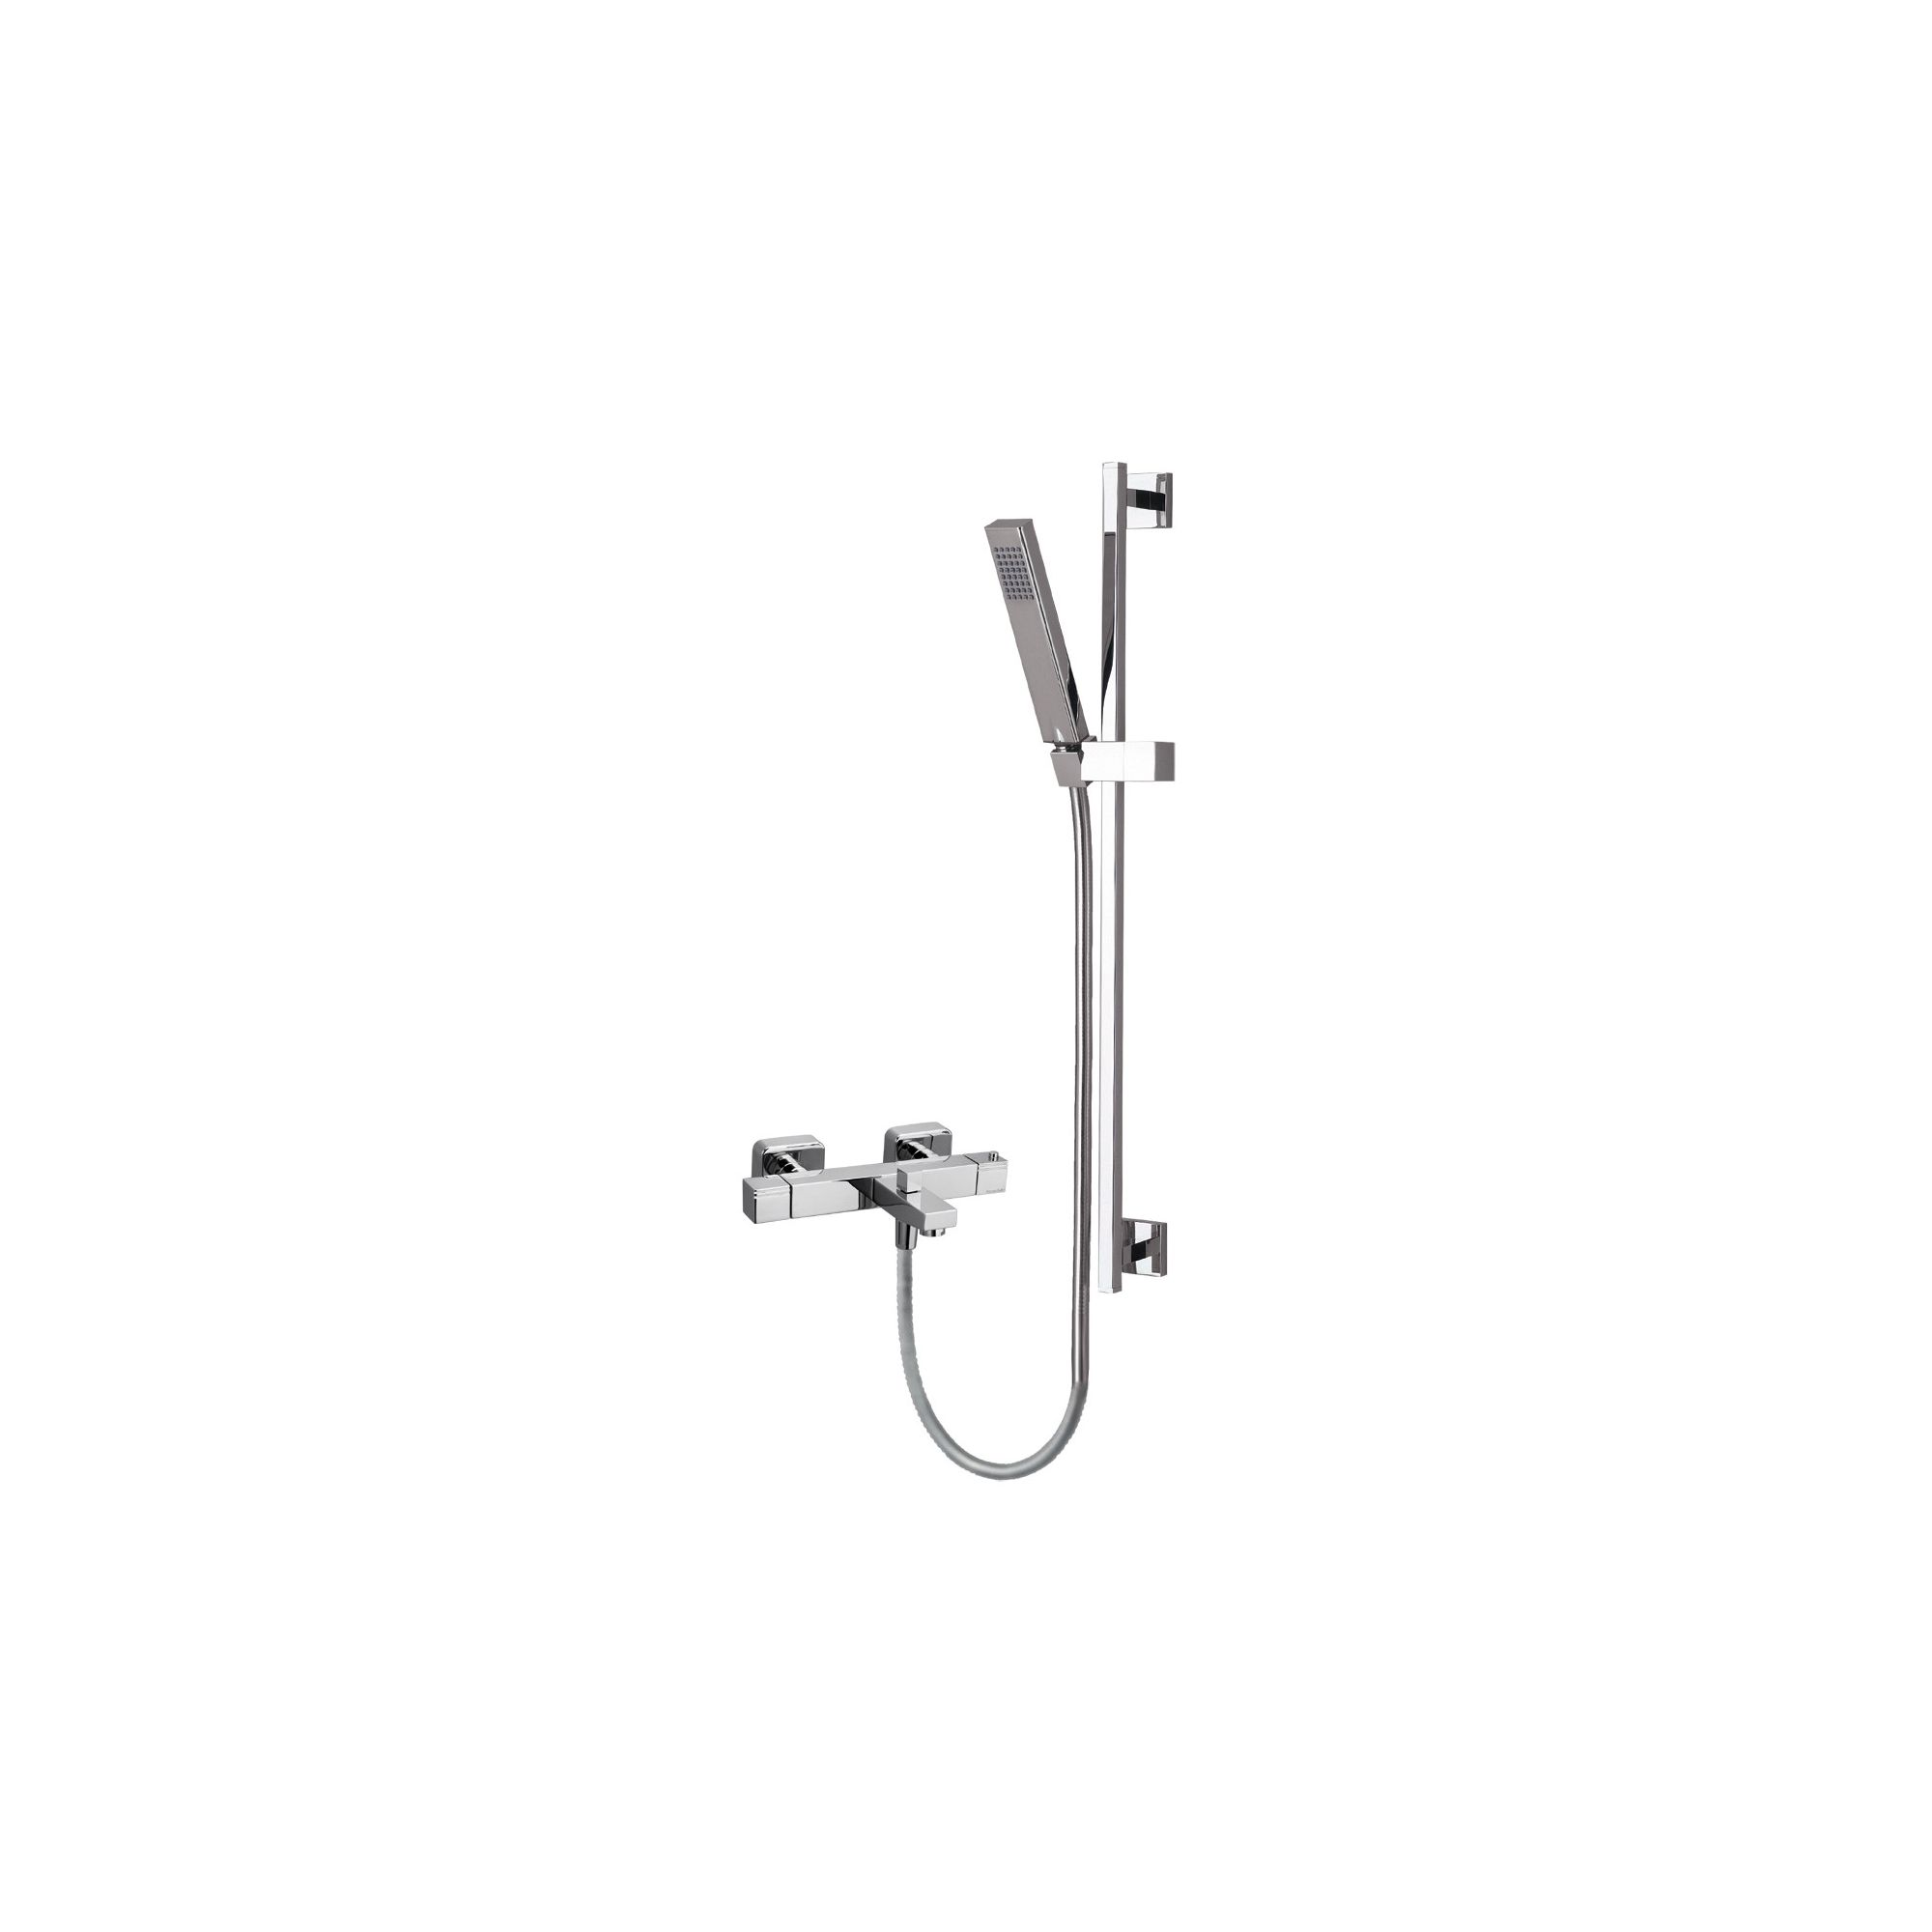 Ramon Soler Thermokuatro Exposed Thermostatic Bath/Shower Mixer with Kuatro Shower Kit at Tesco Direct